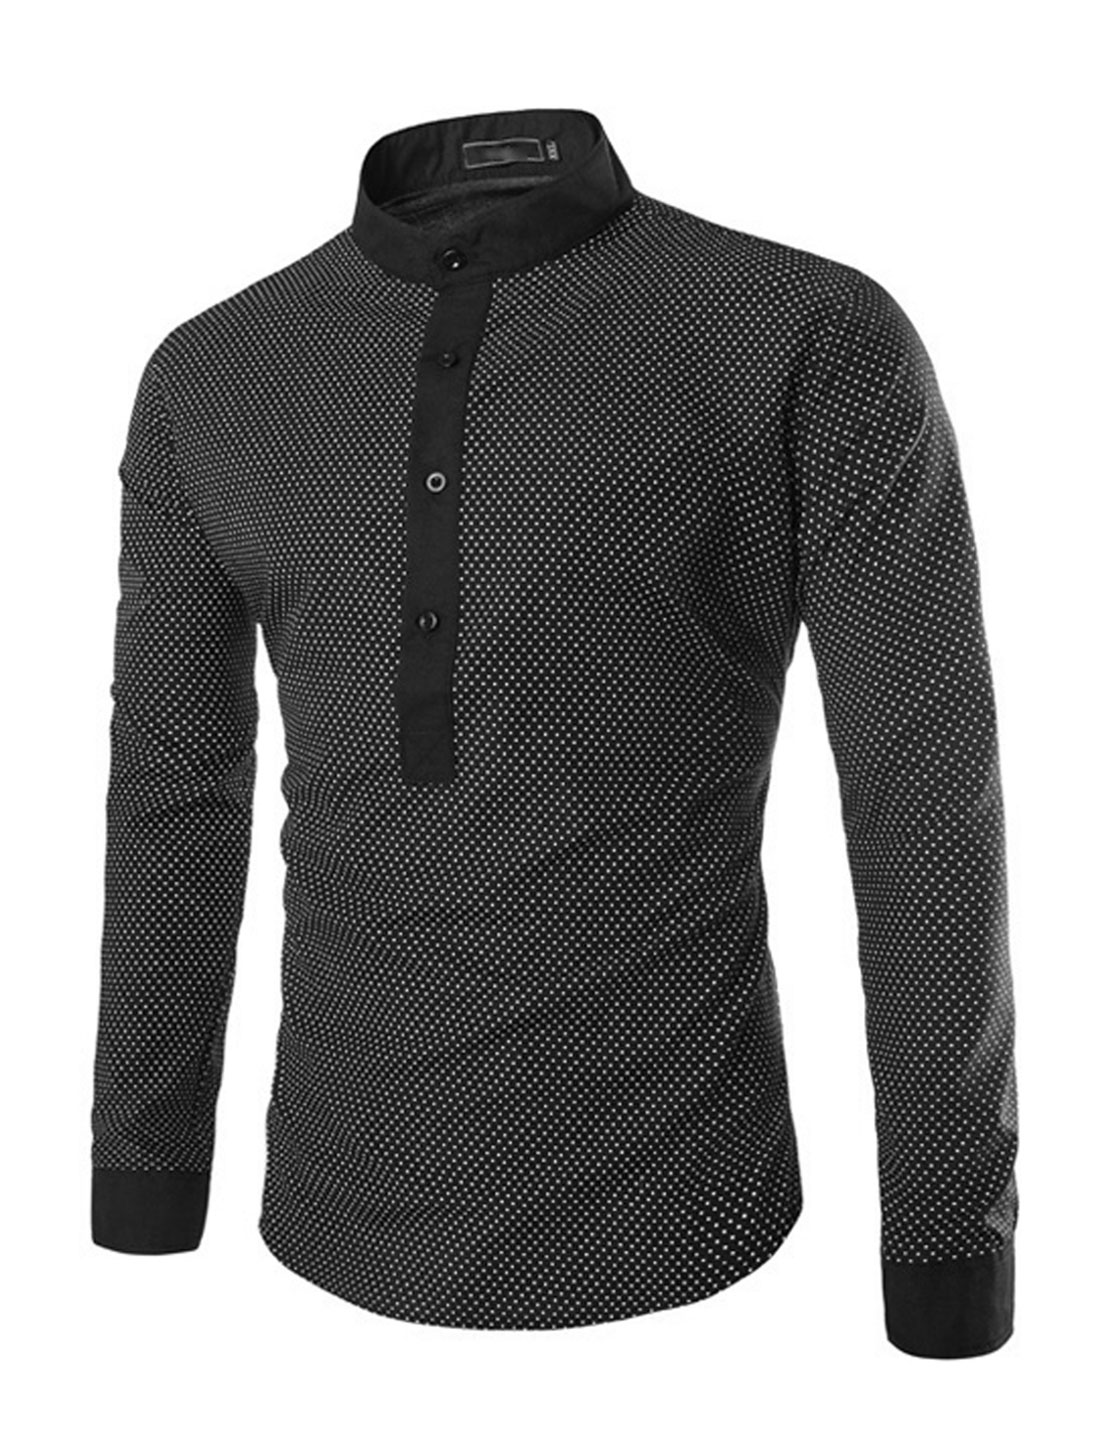 Men Stand Collar Long Sleeve Dots Shirts Black White S